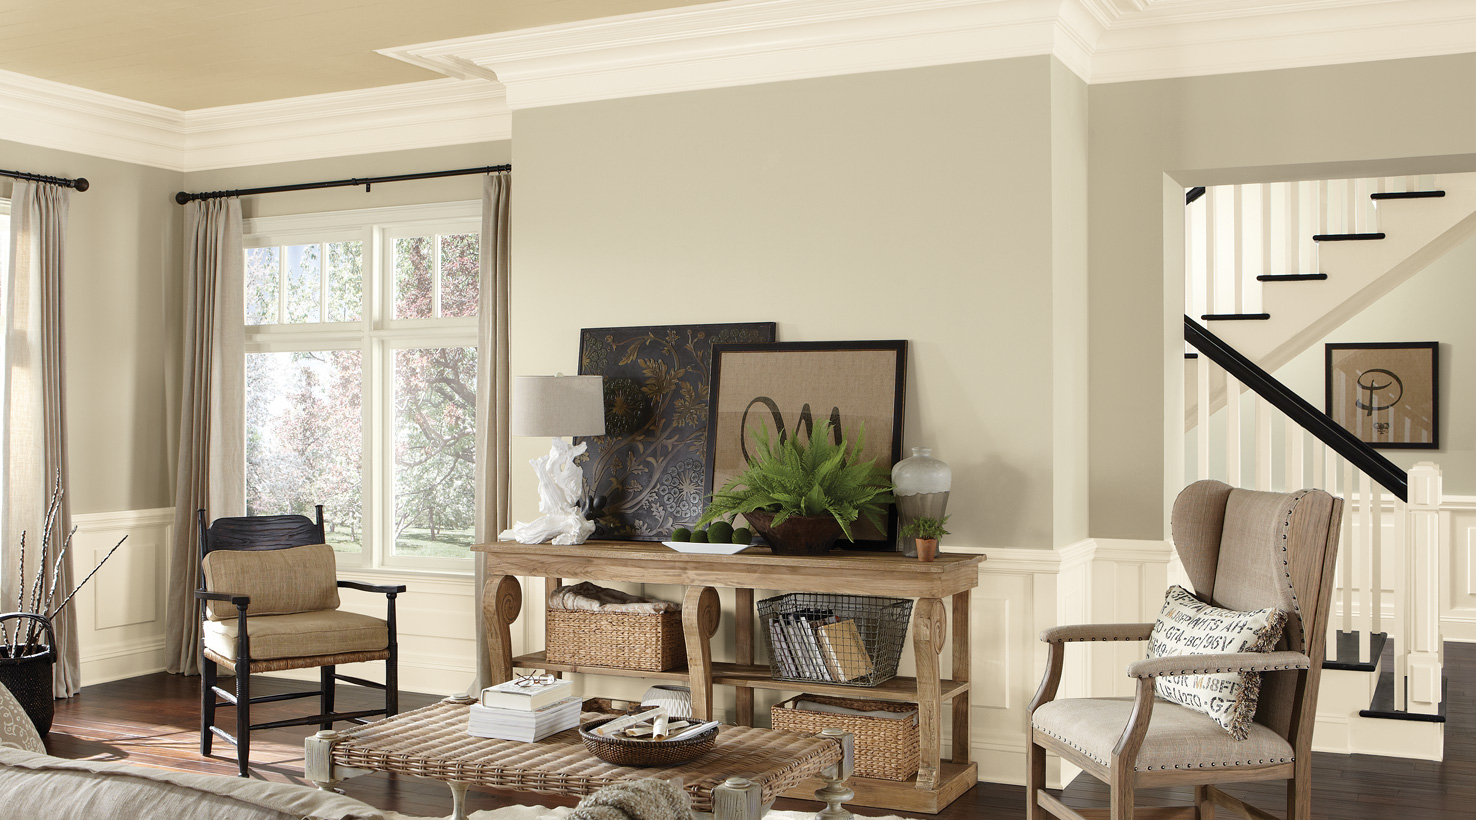 Living Room Paint Colors – storiestrending.com